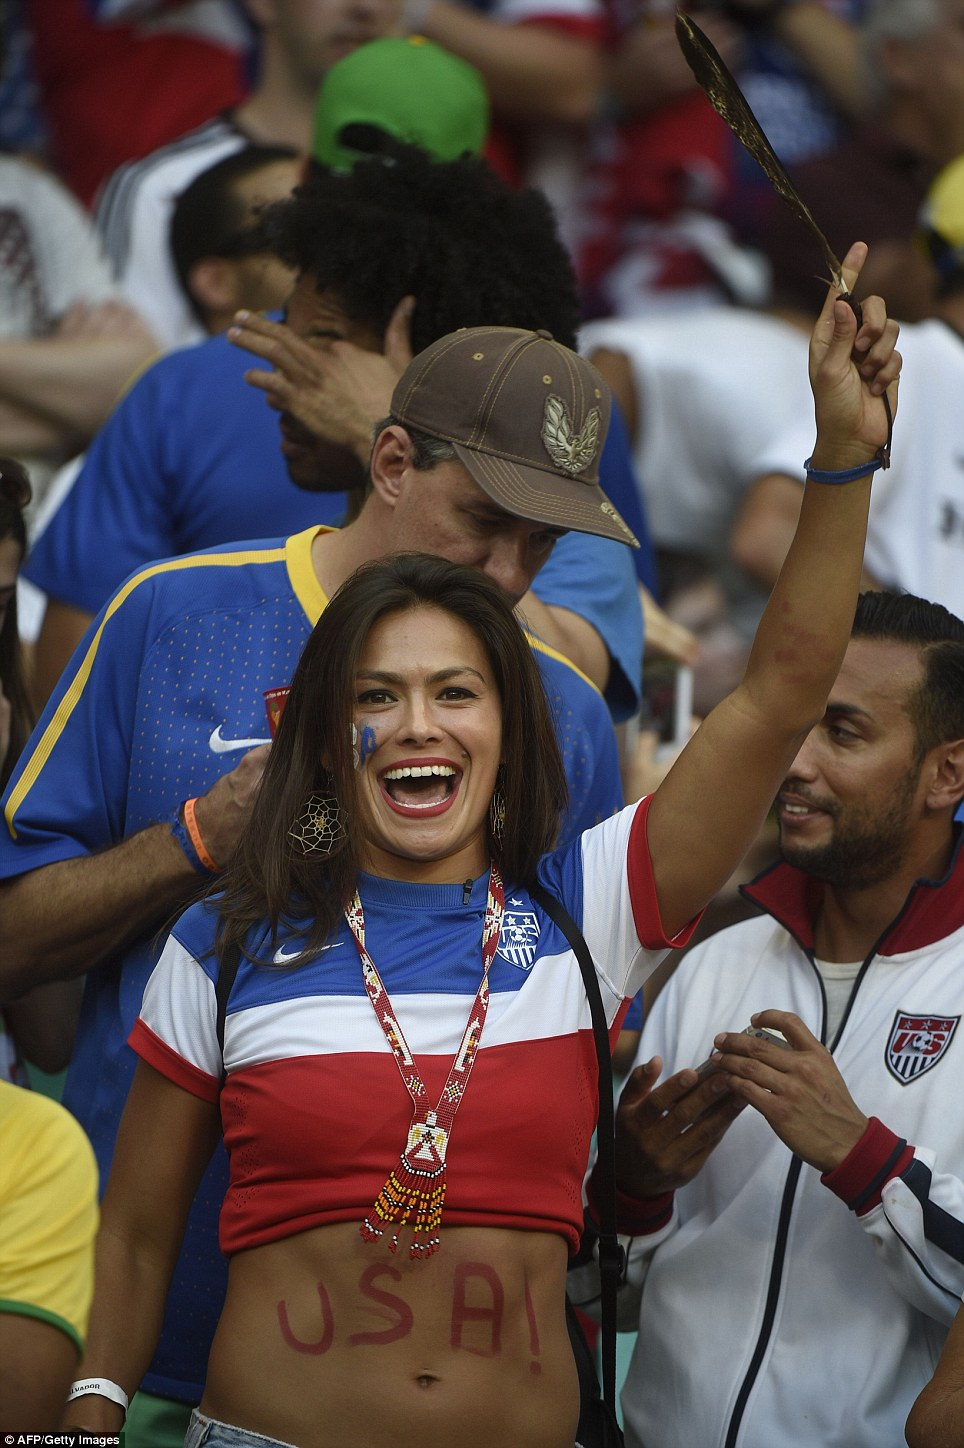 USA fans cheer before a Round of 16 football match between Belgium and USA at Fonte Nova Arena in Salvador